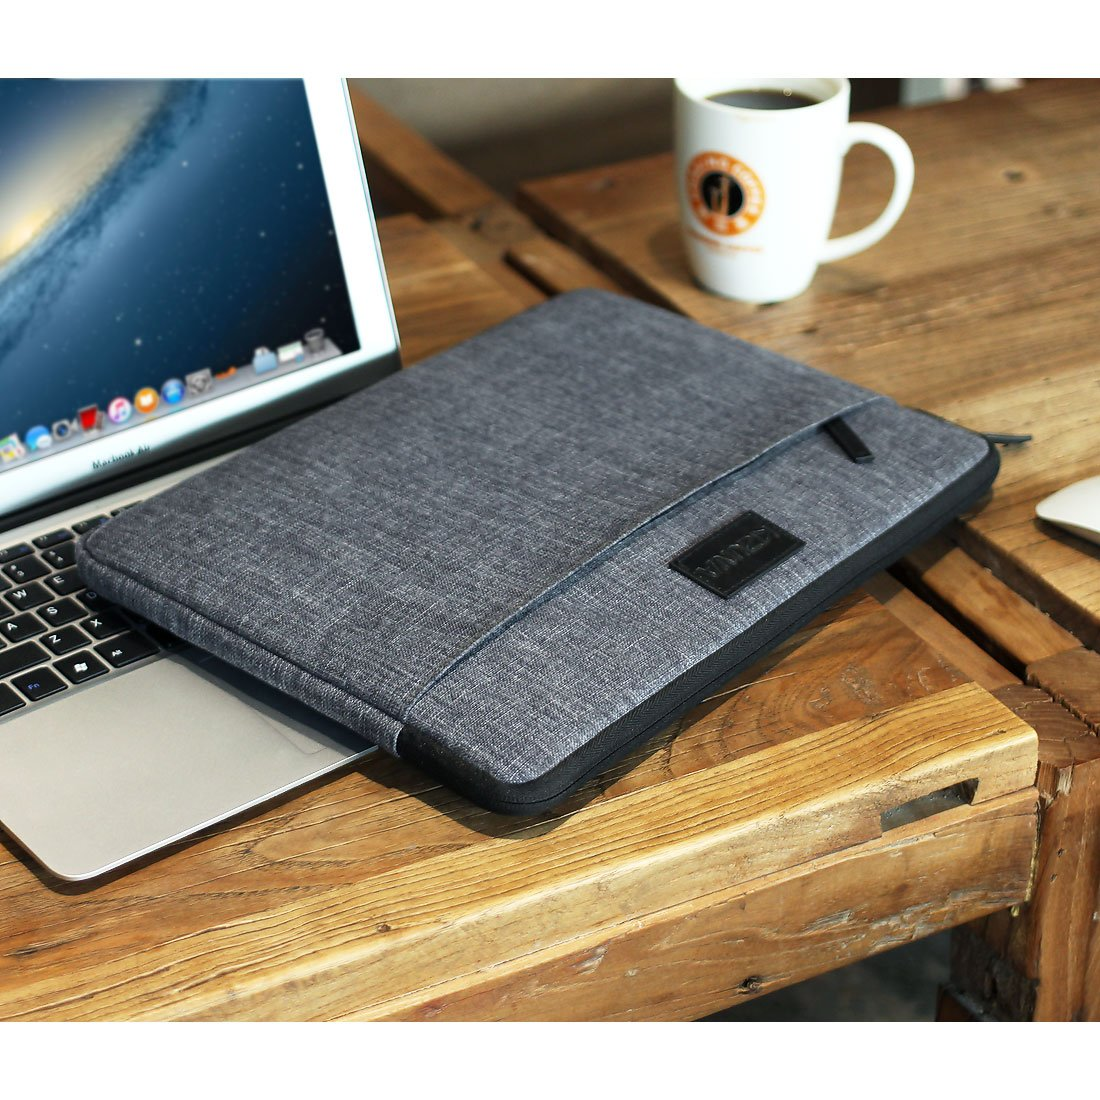 KIZUNA Laptop Sleeve Case 15.6 Inch Water-resistant Notebook Computer Carry Bag Cover for 15.6 Lenovo Flex 4 5//Yoga 730//Ideapad 330 530S//ThinkPad P1//HP ENVY 15//ASUS ROG Zephyrus//Acer//Dell Dark Grey